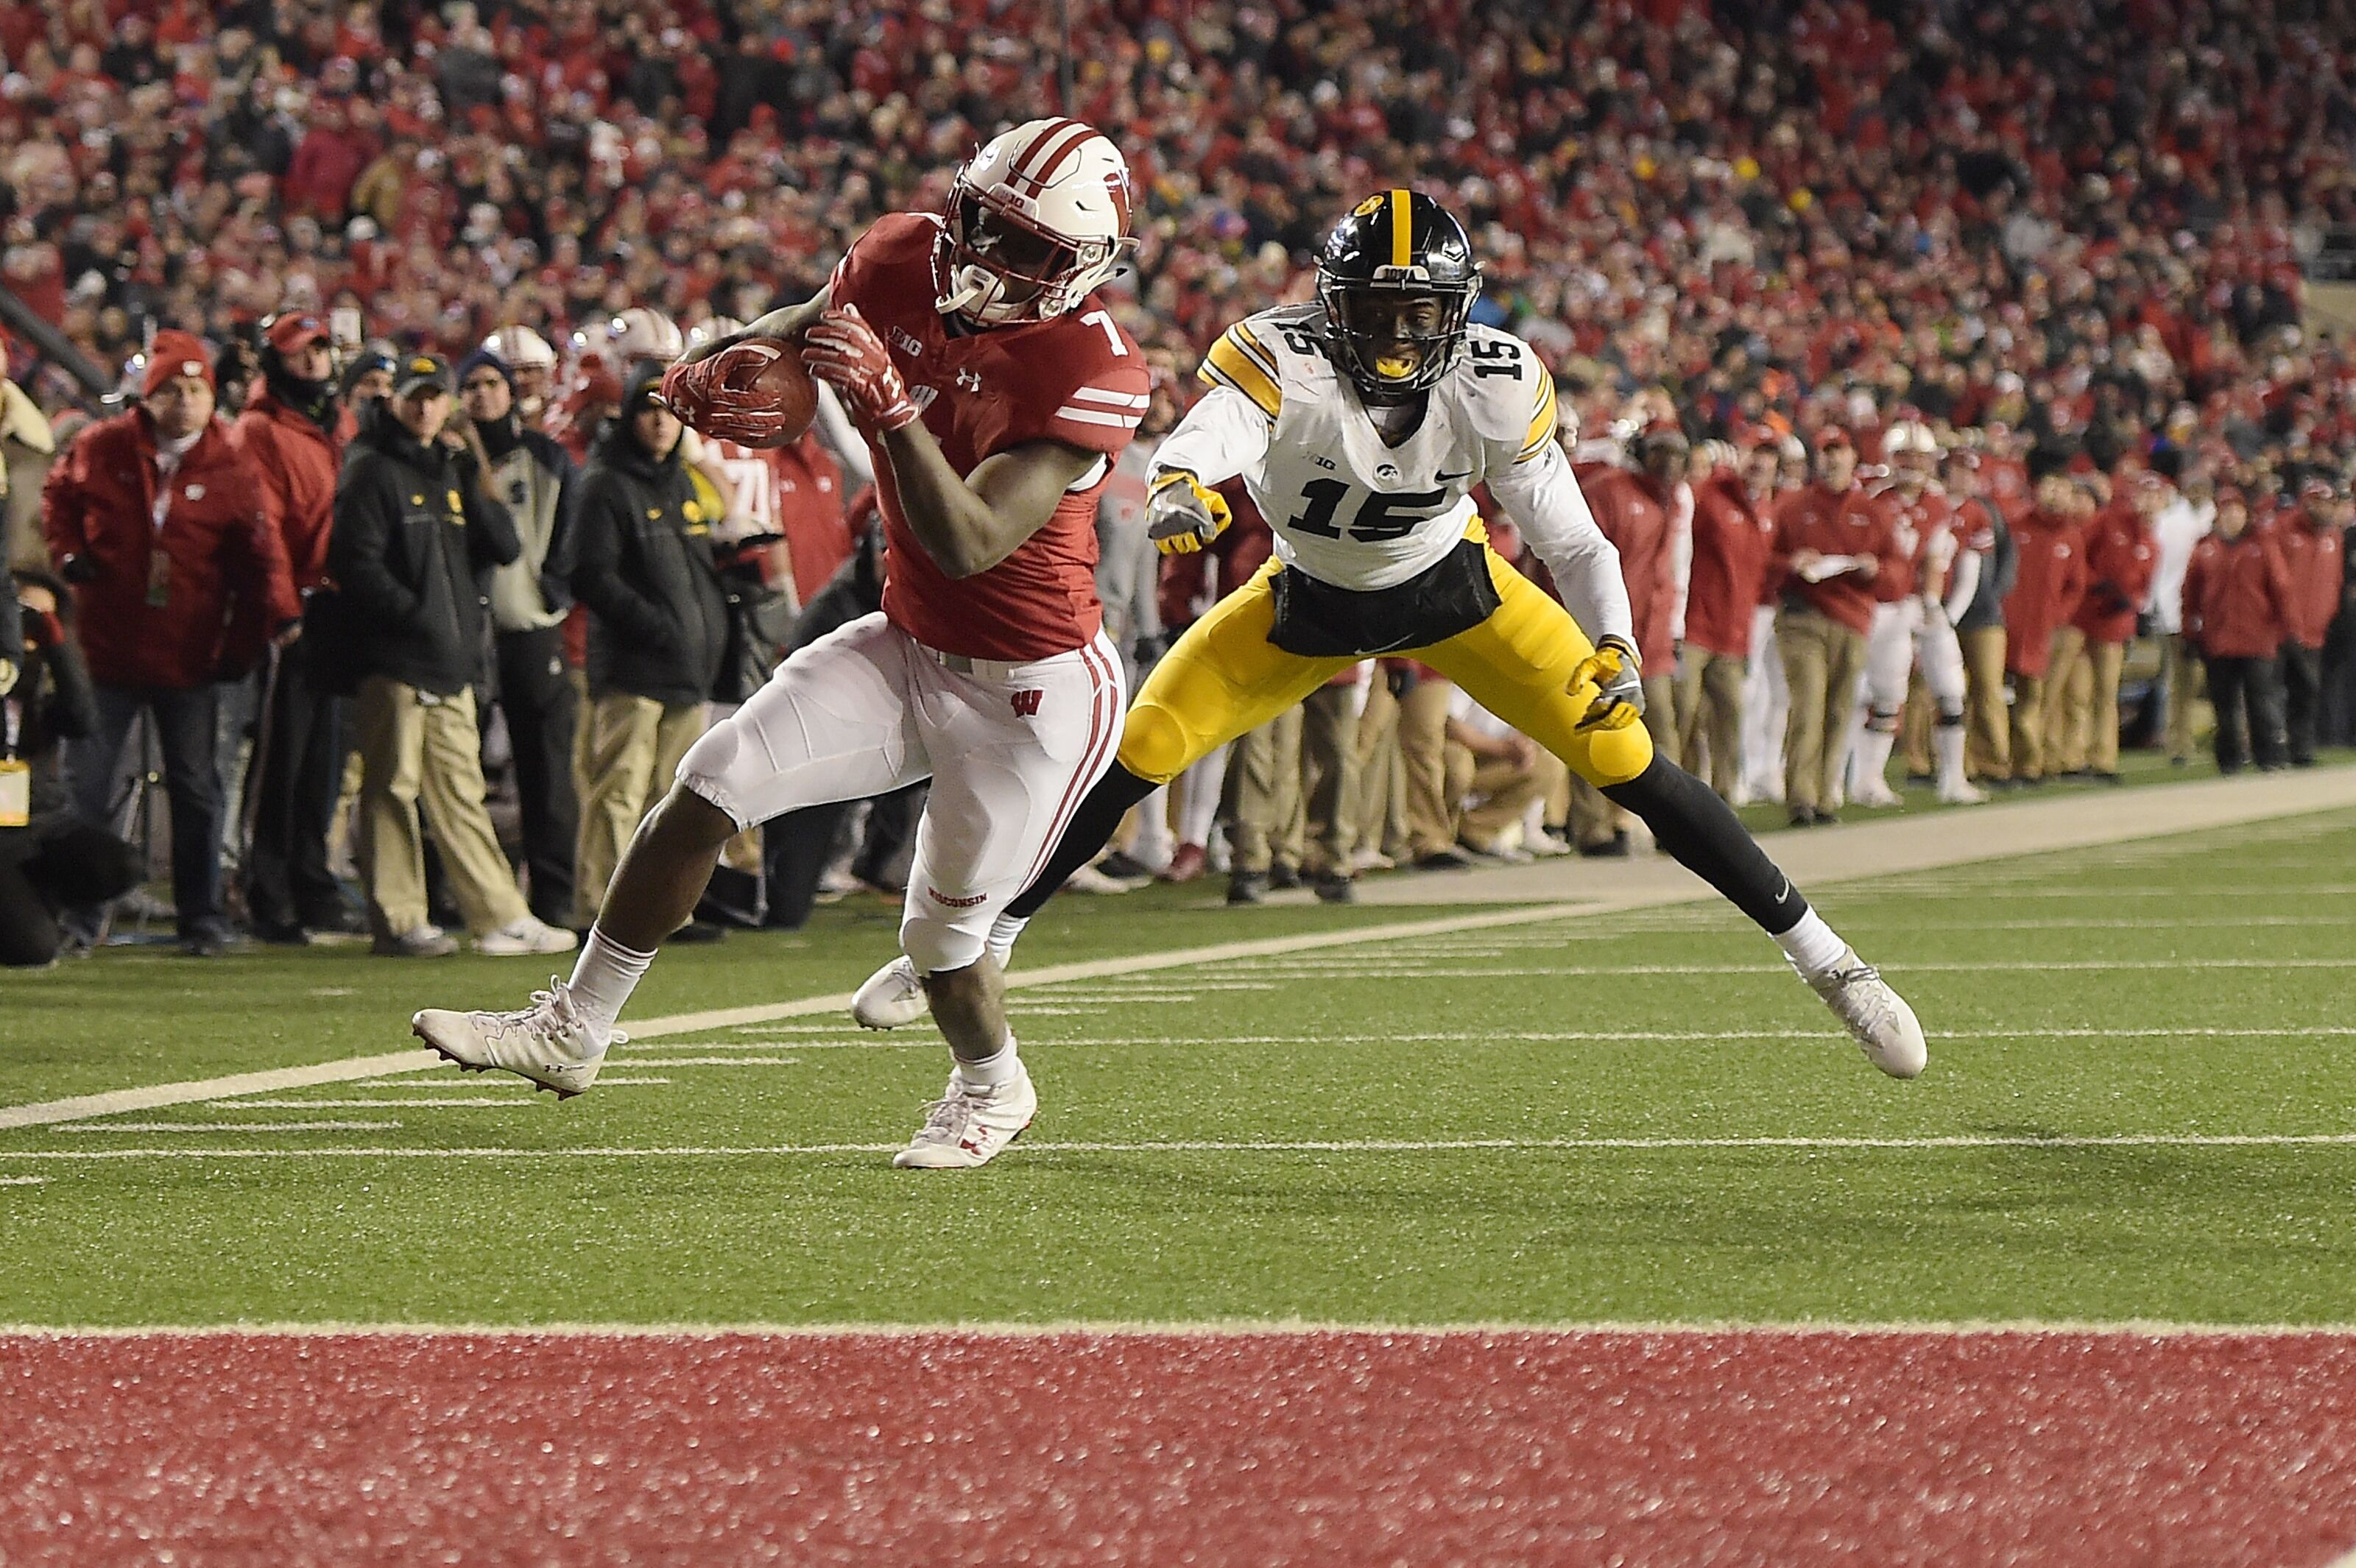 Iowa Football: The Wisconsin loss was good for the Hawkeyes